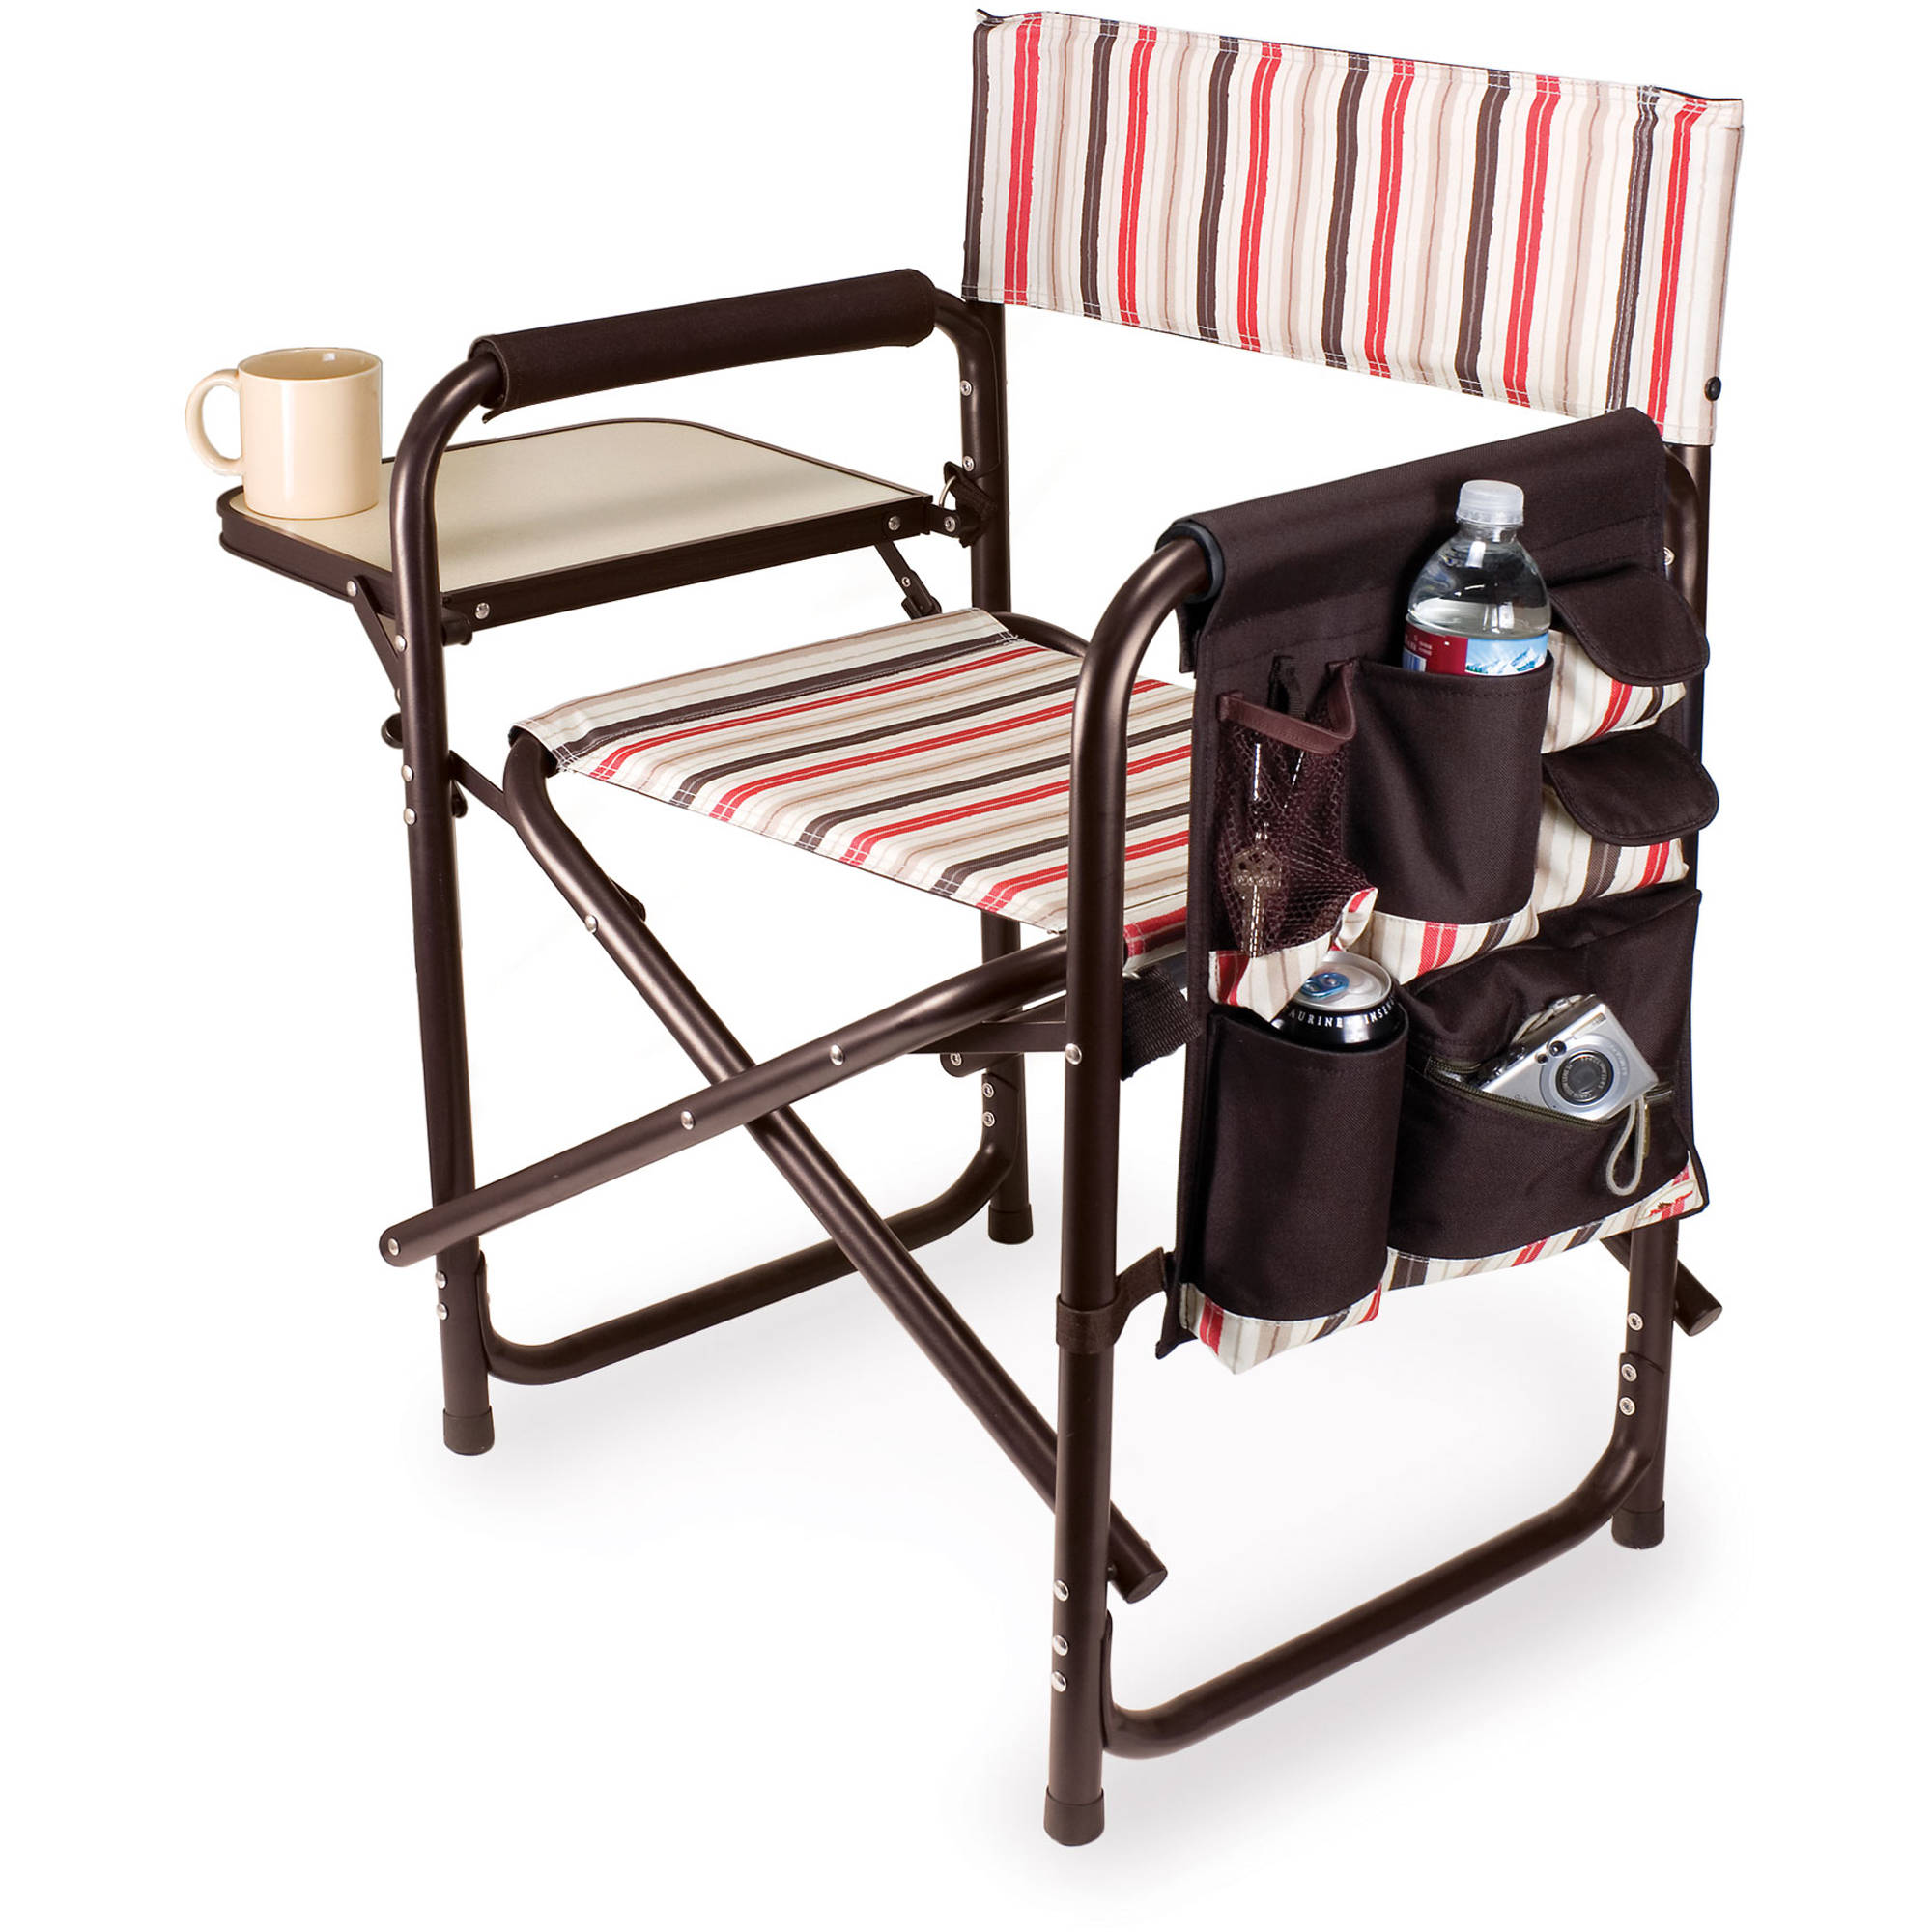 Picnic Time Sports Chair Moka Collection 809 00 777 000